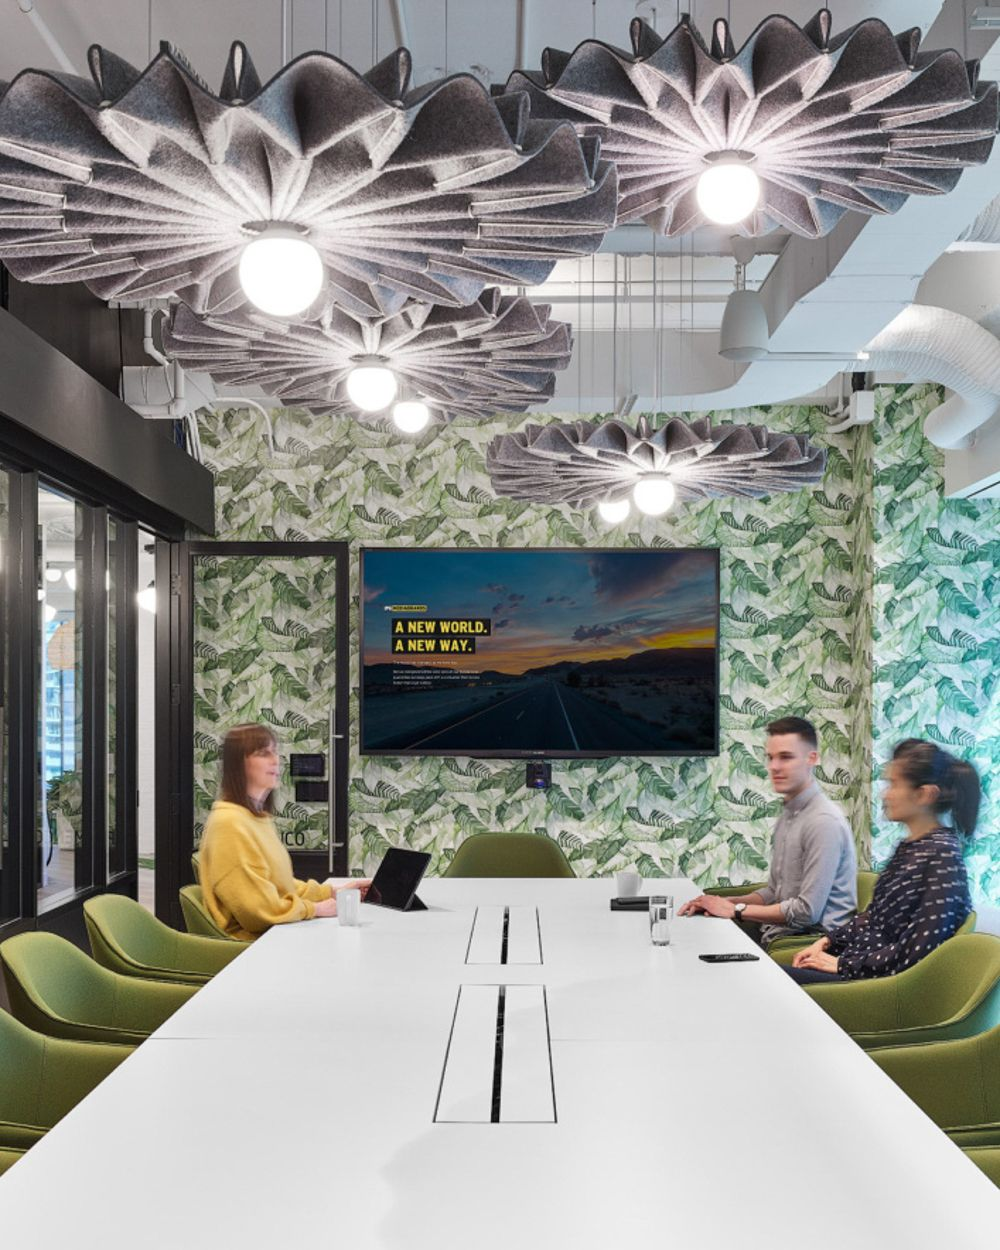 Buzzipleat Brings Light And Silence To Your Meeting Room